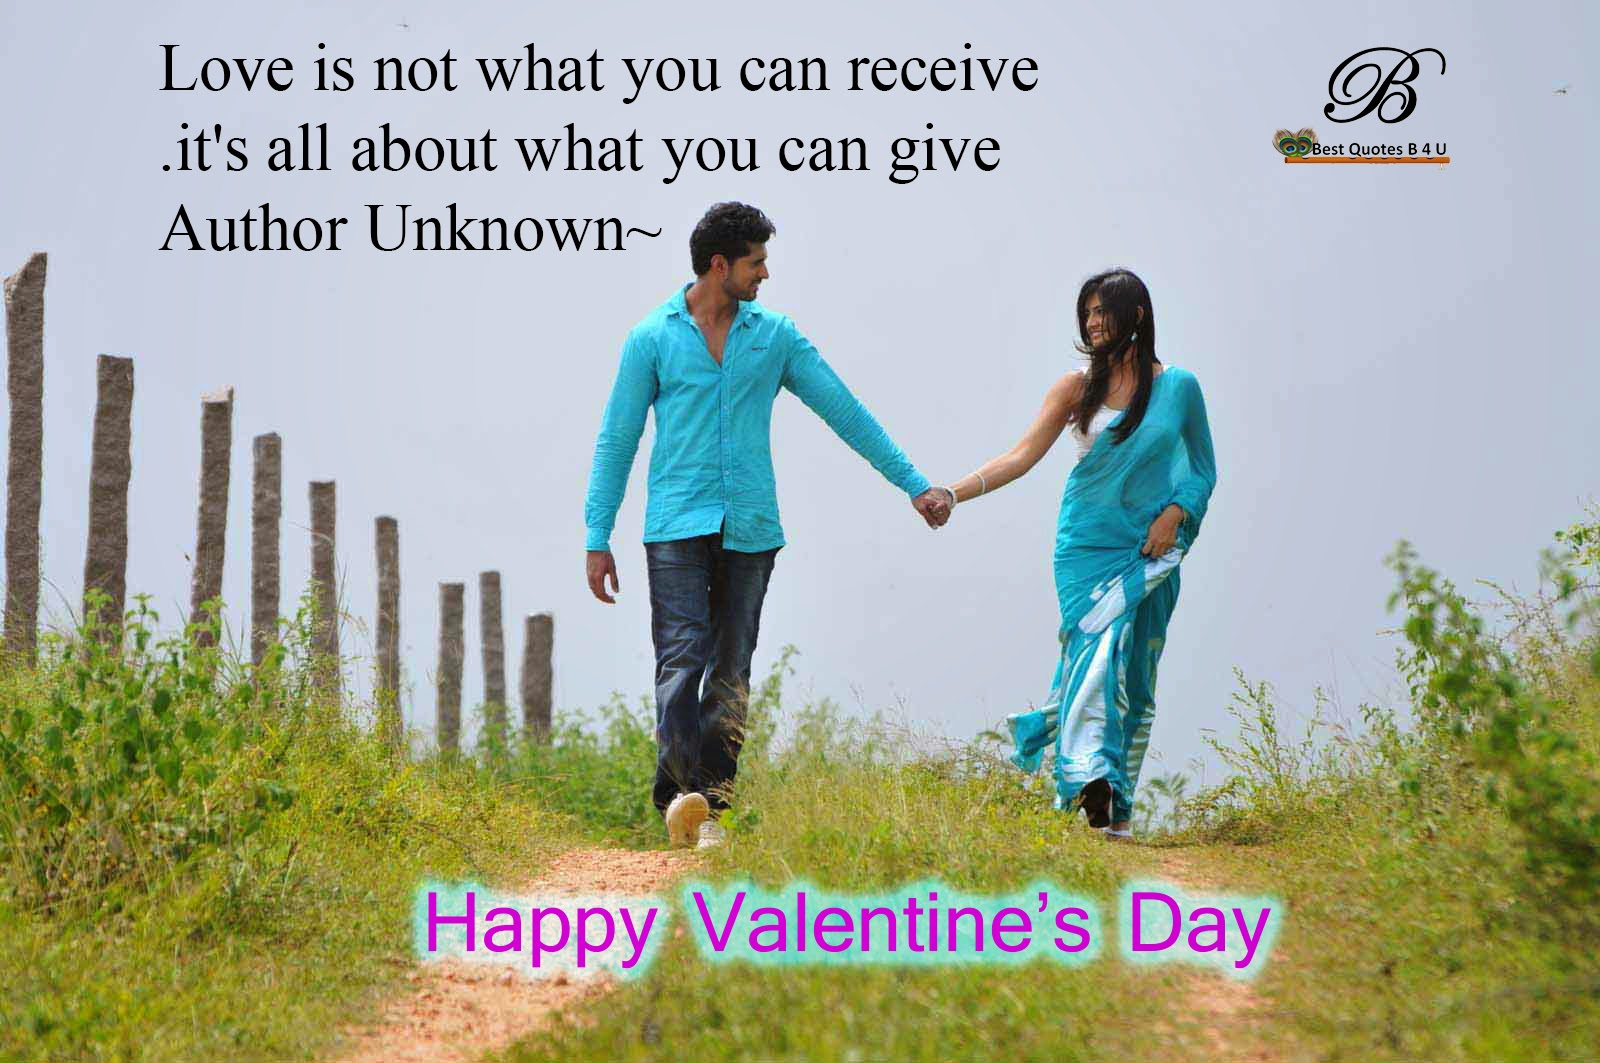 Valentine's Day Top best Love Quotes Greetings Wishes Images HD Wallpapers03